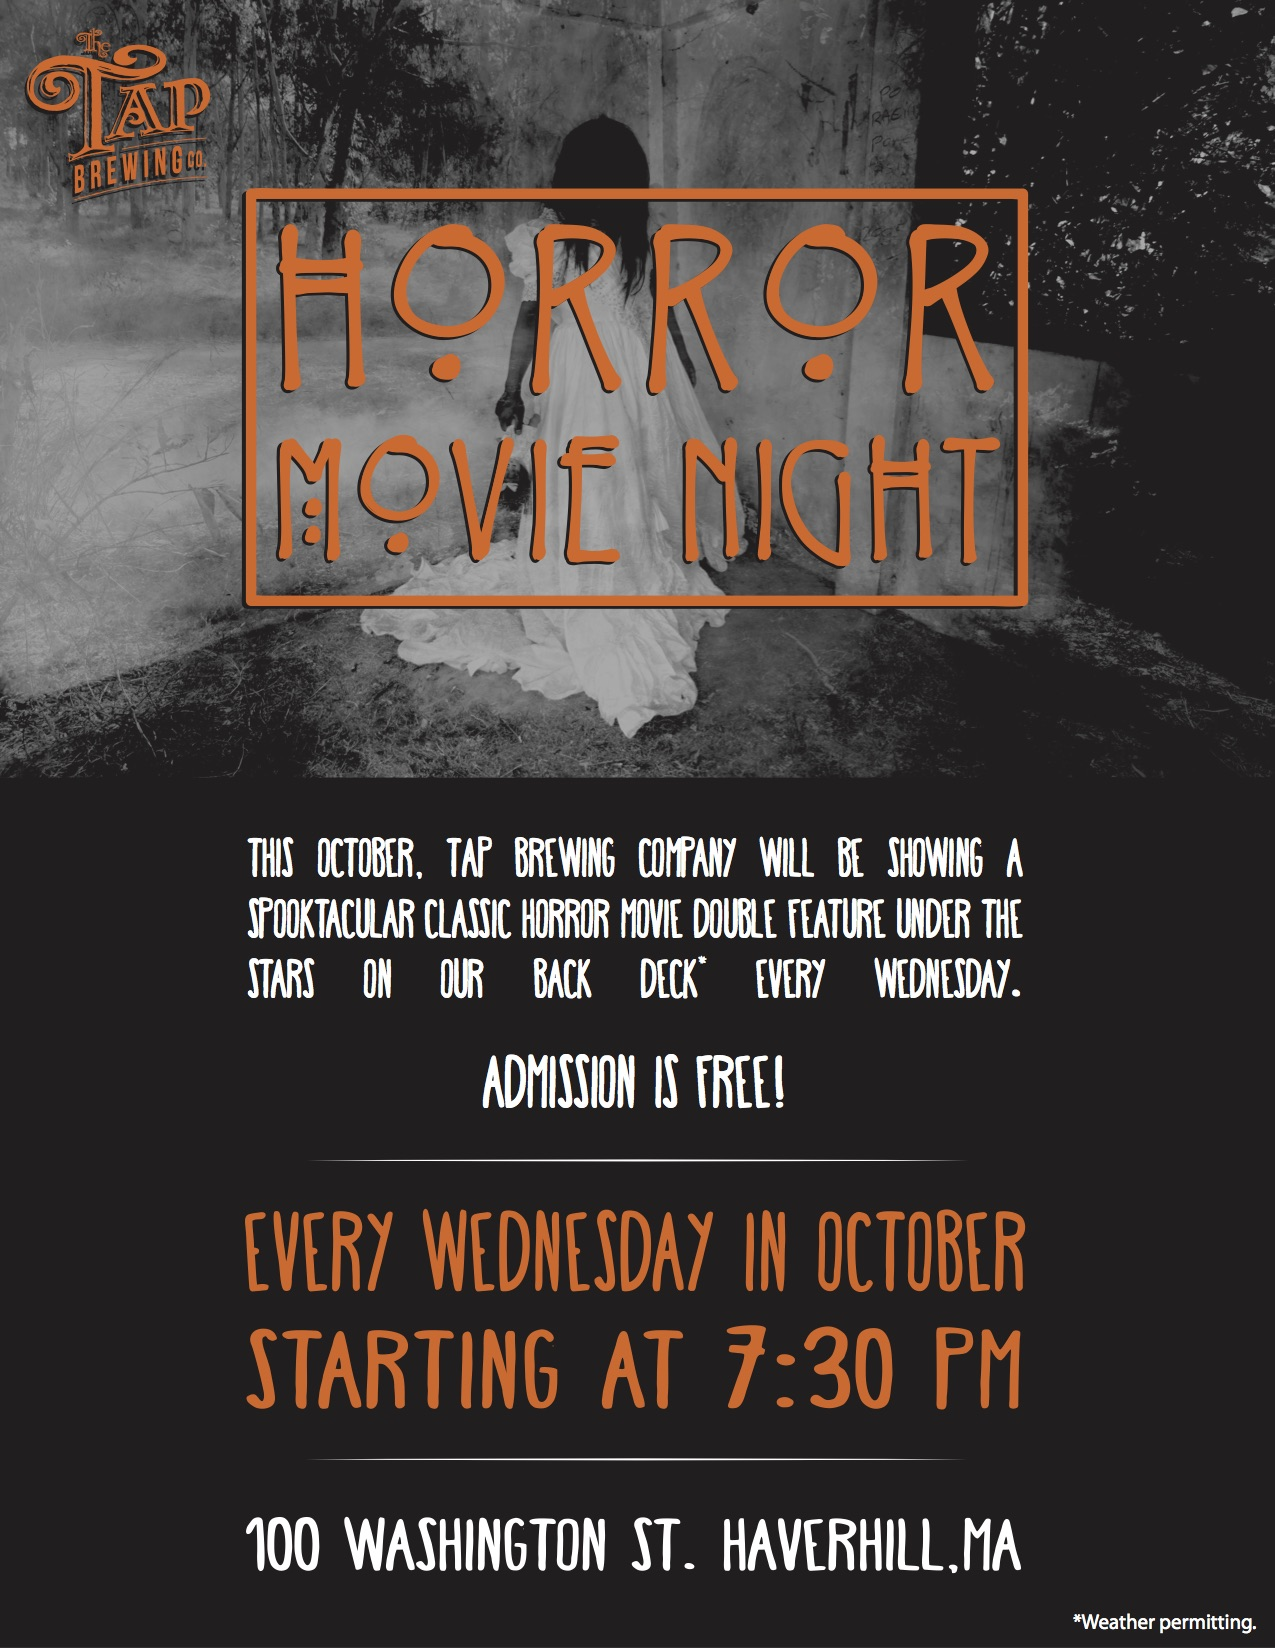 Horror Movie Night The Tap Brewing Company